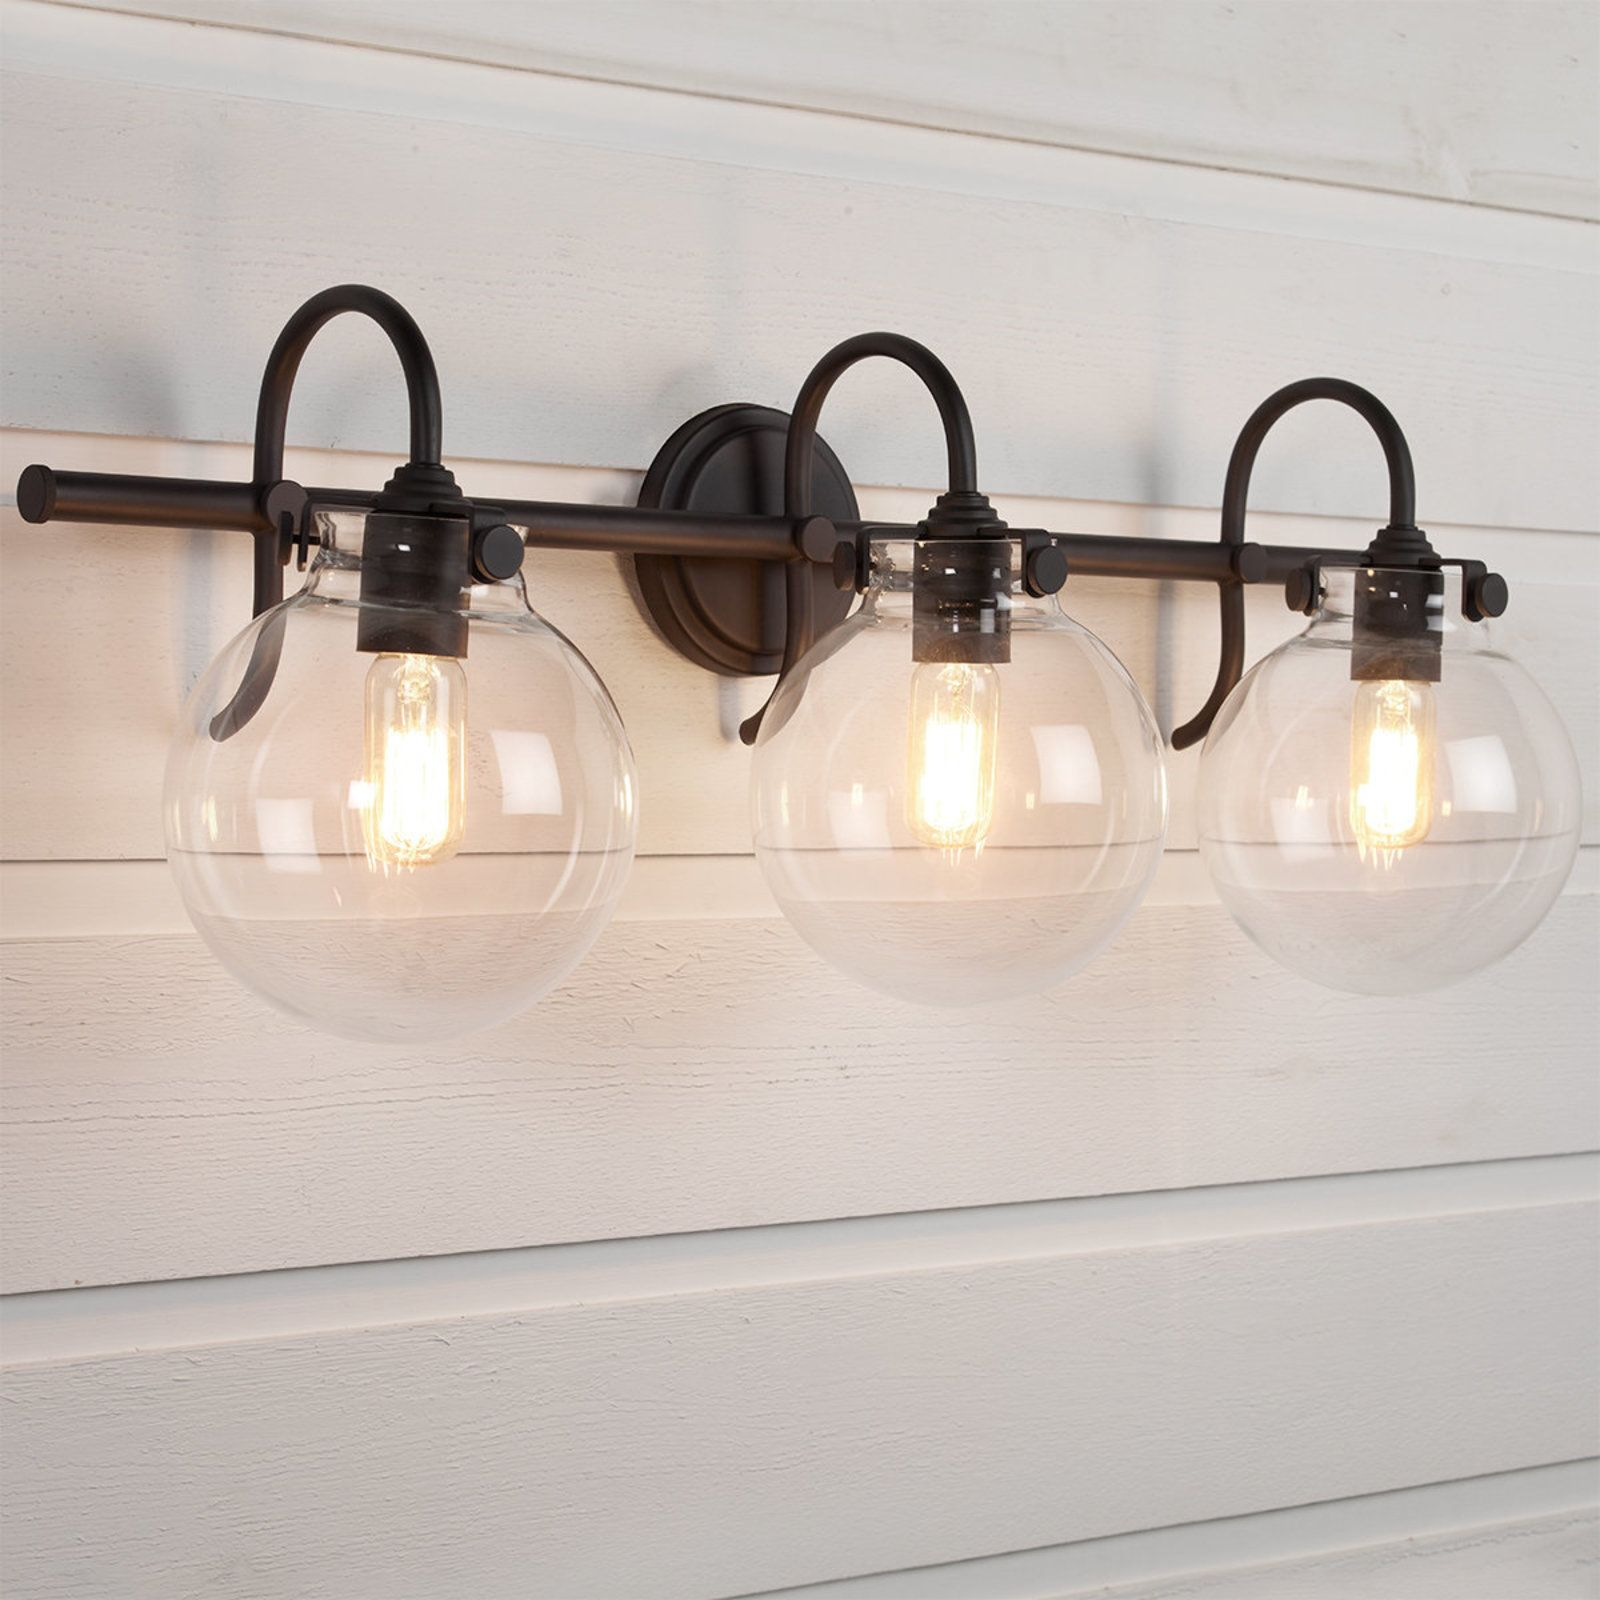 pipes industrial amp rustic shades bathroom vanity lighting bath best farmhouse light of fixtures